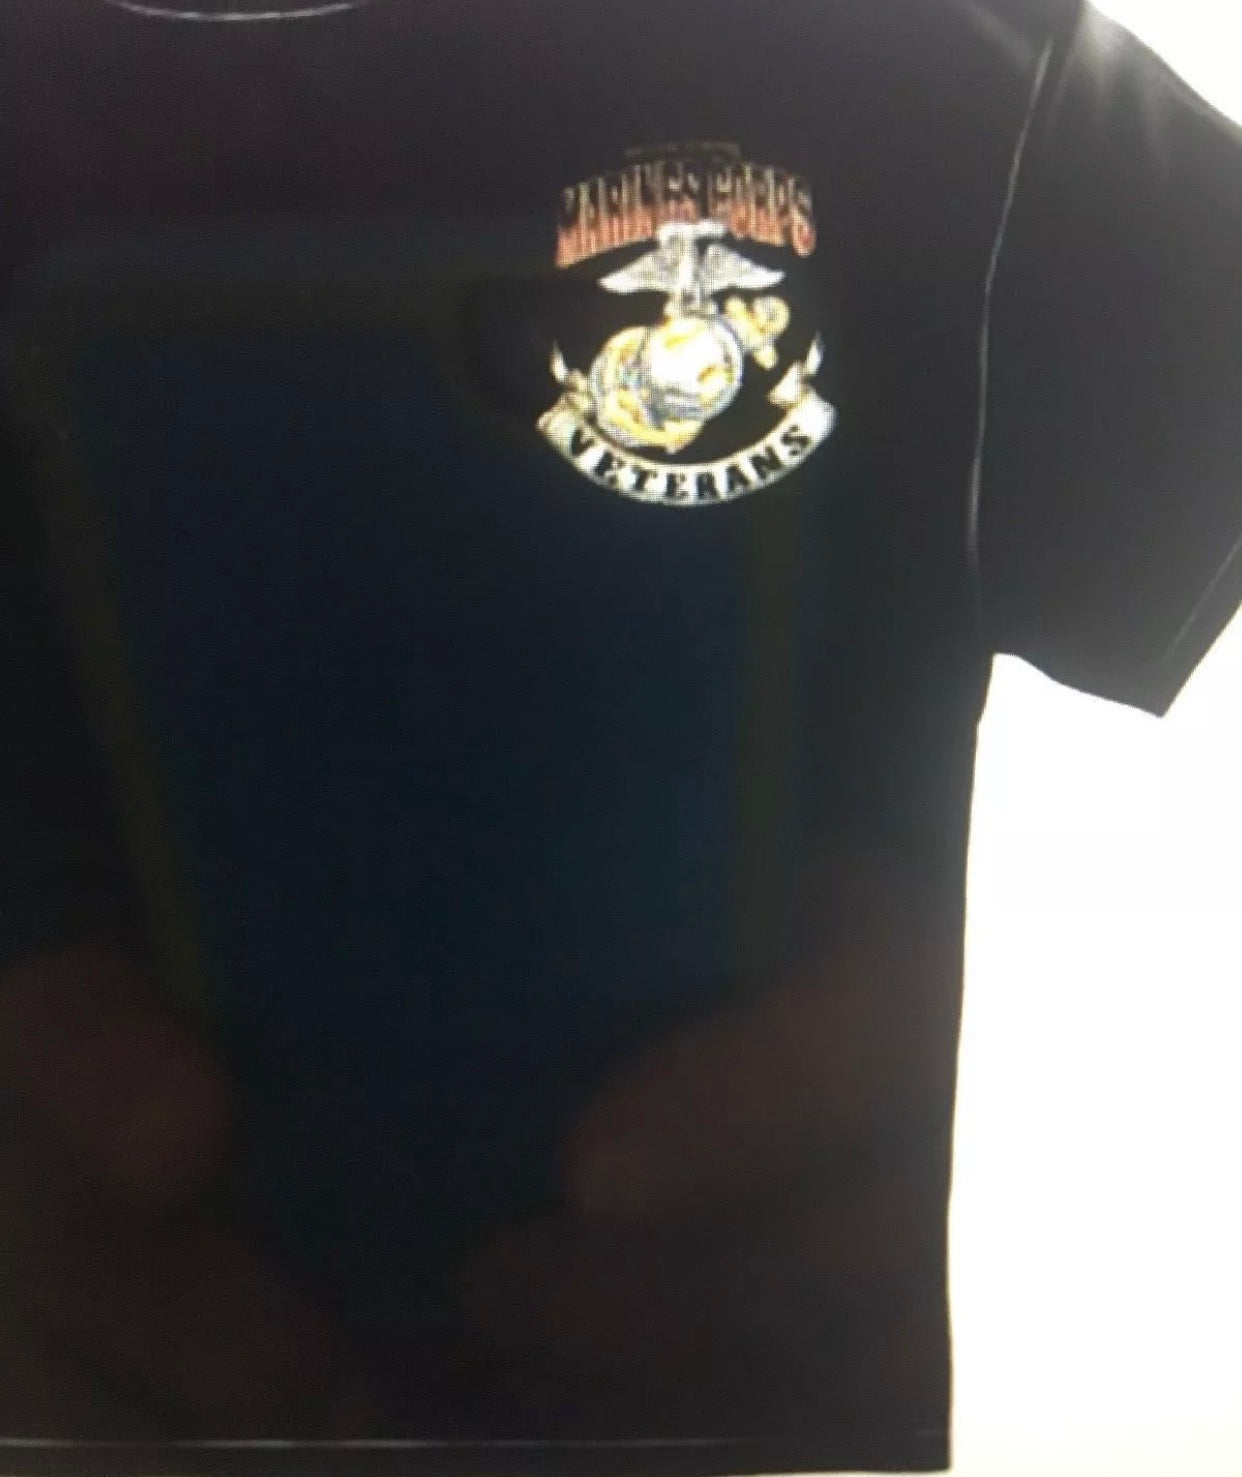 Marine Corps Proud To Have Served Veterans T-Shirt - The Wall Kids, Inc.